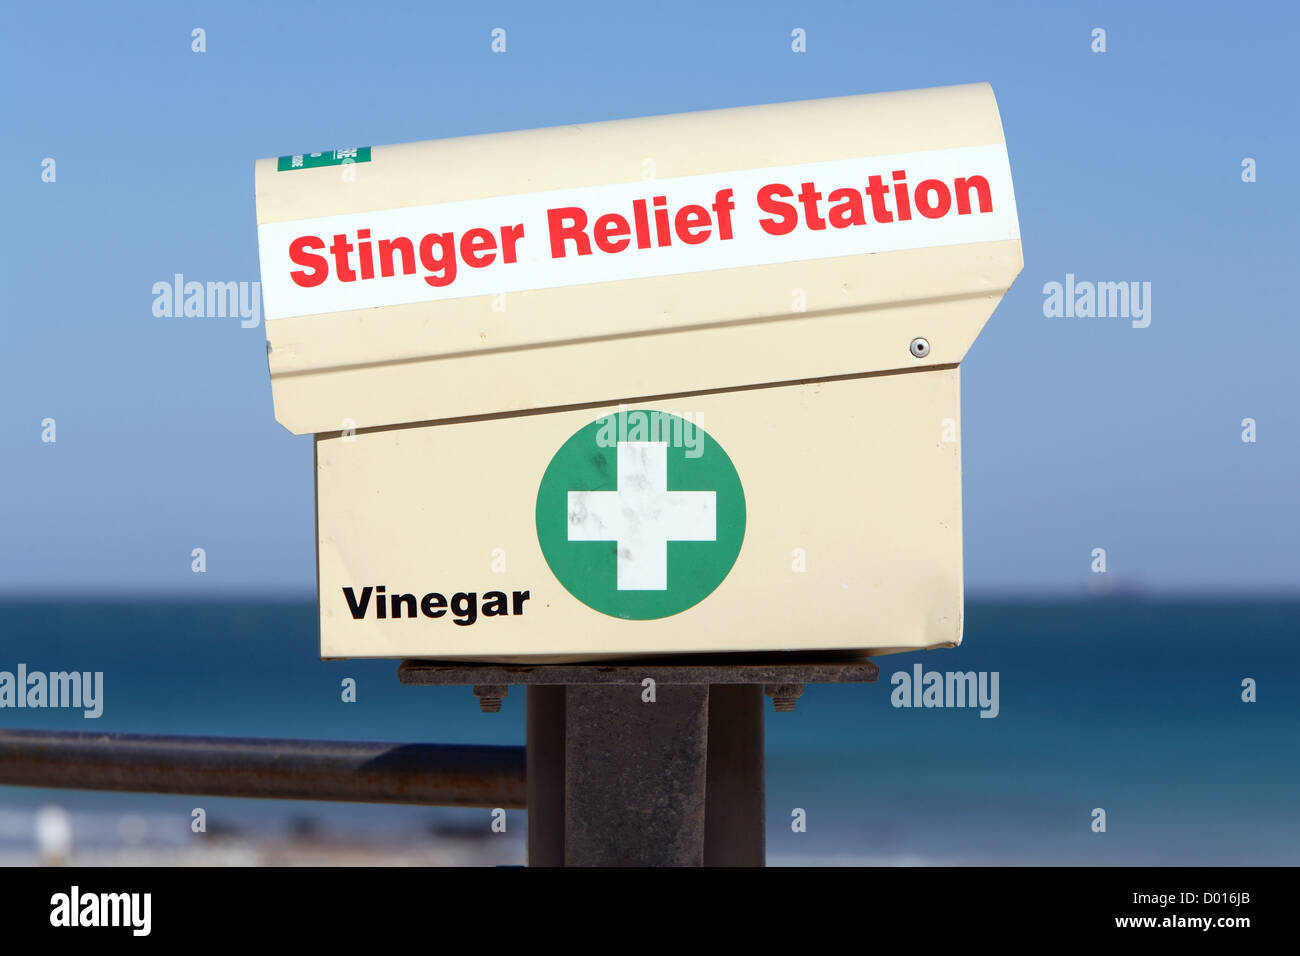 Stinger relief station. Cable Beach, Broome, Western Australia. - Stock Image